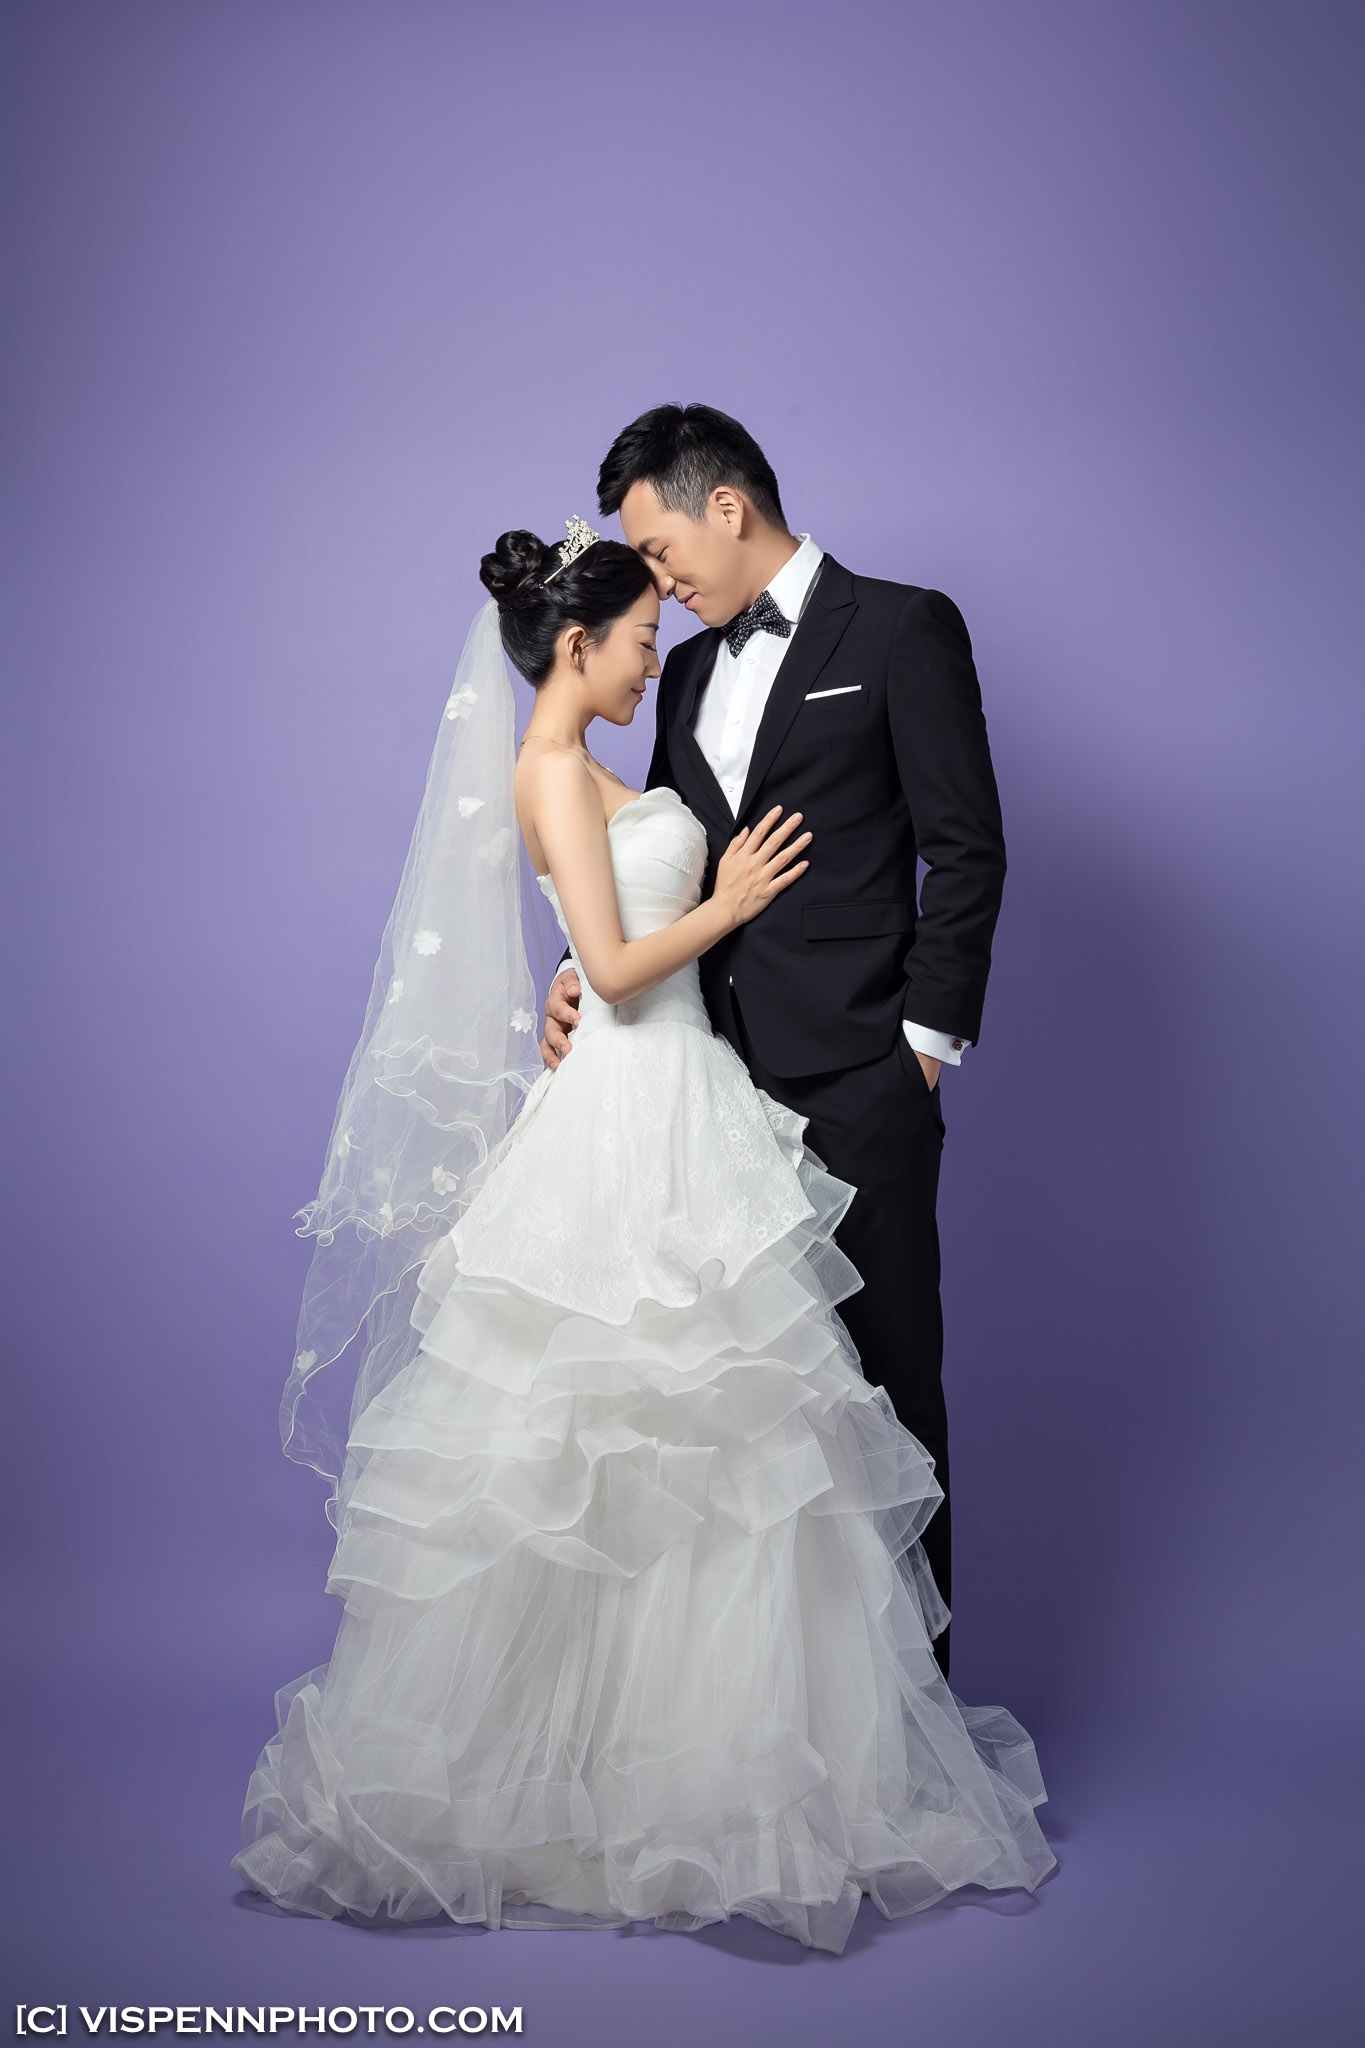 PRE WEDDING Photography Melbourne 5DB 0072